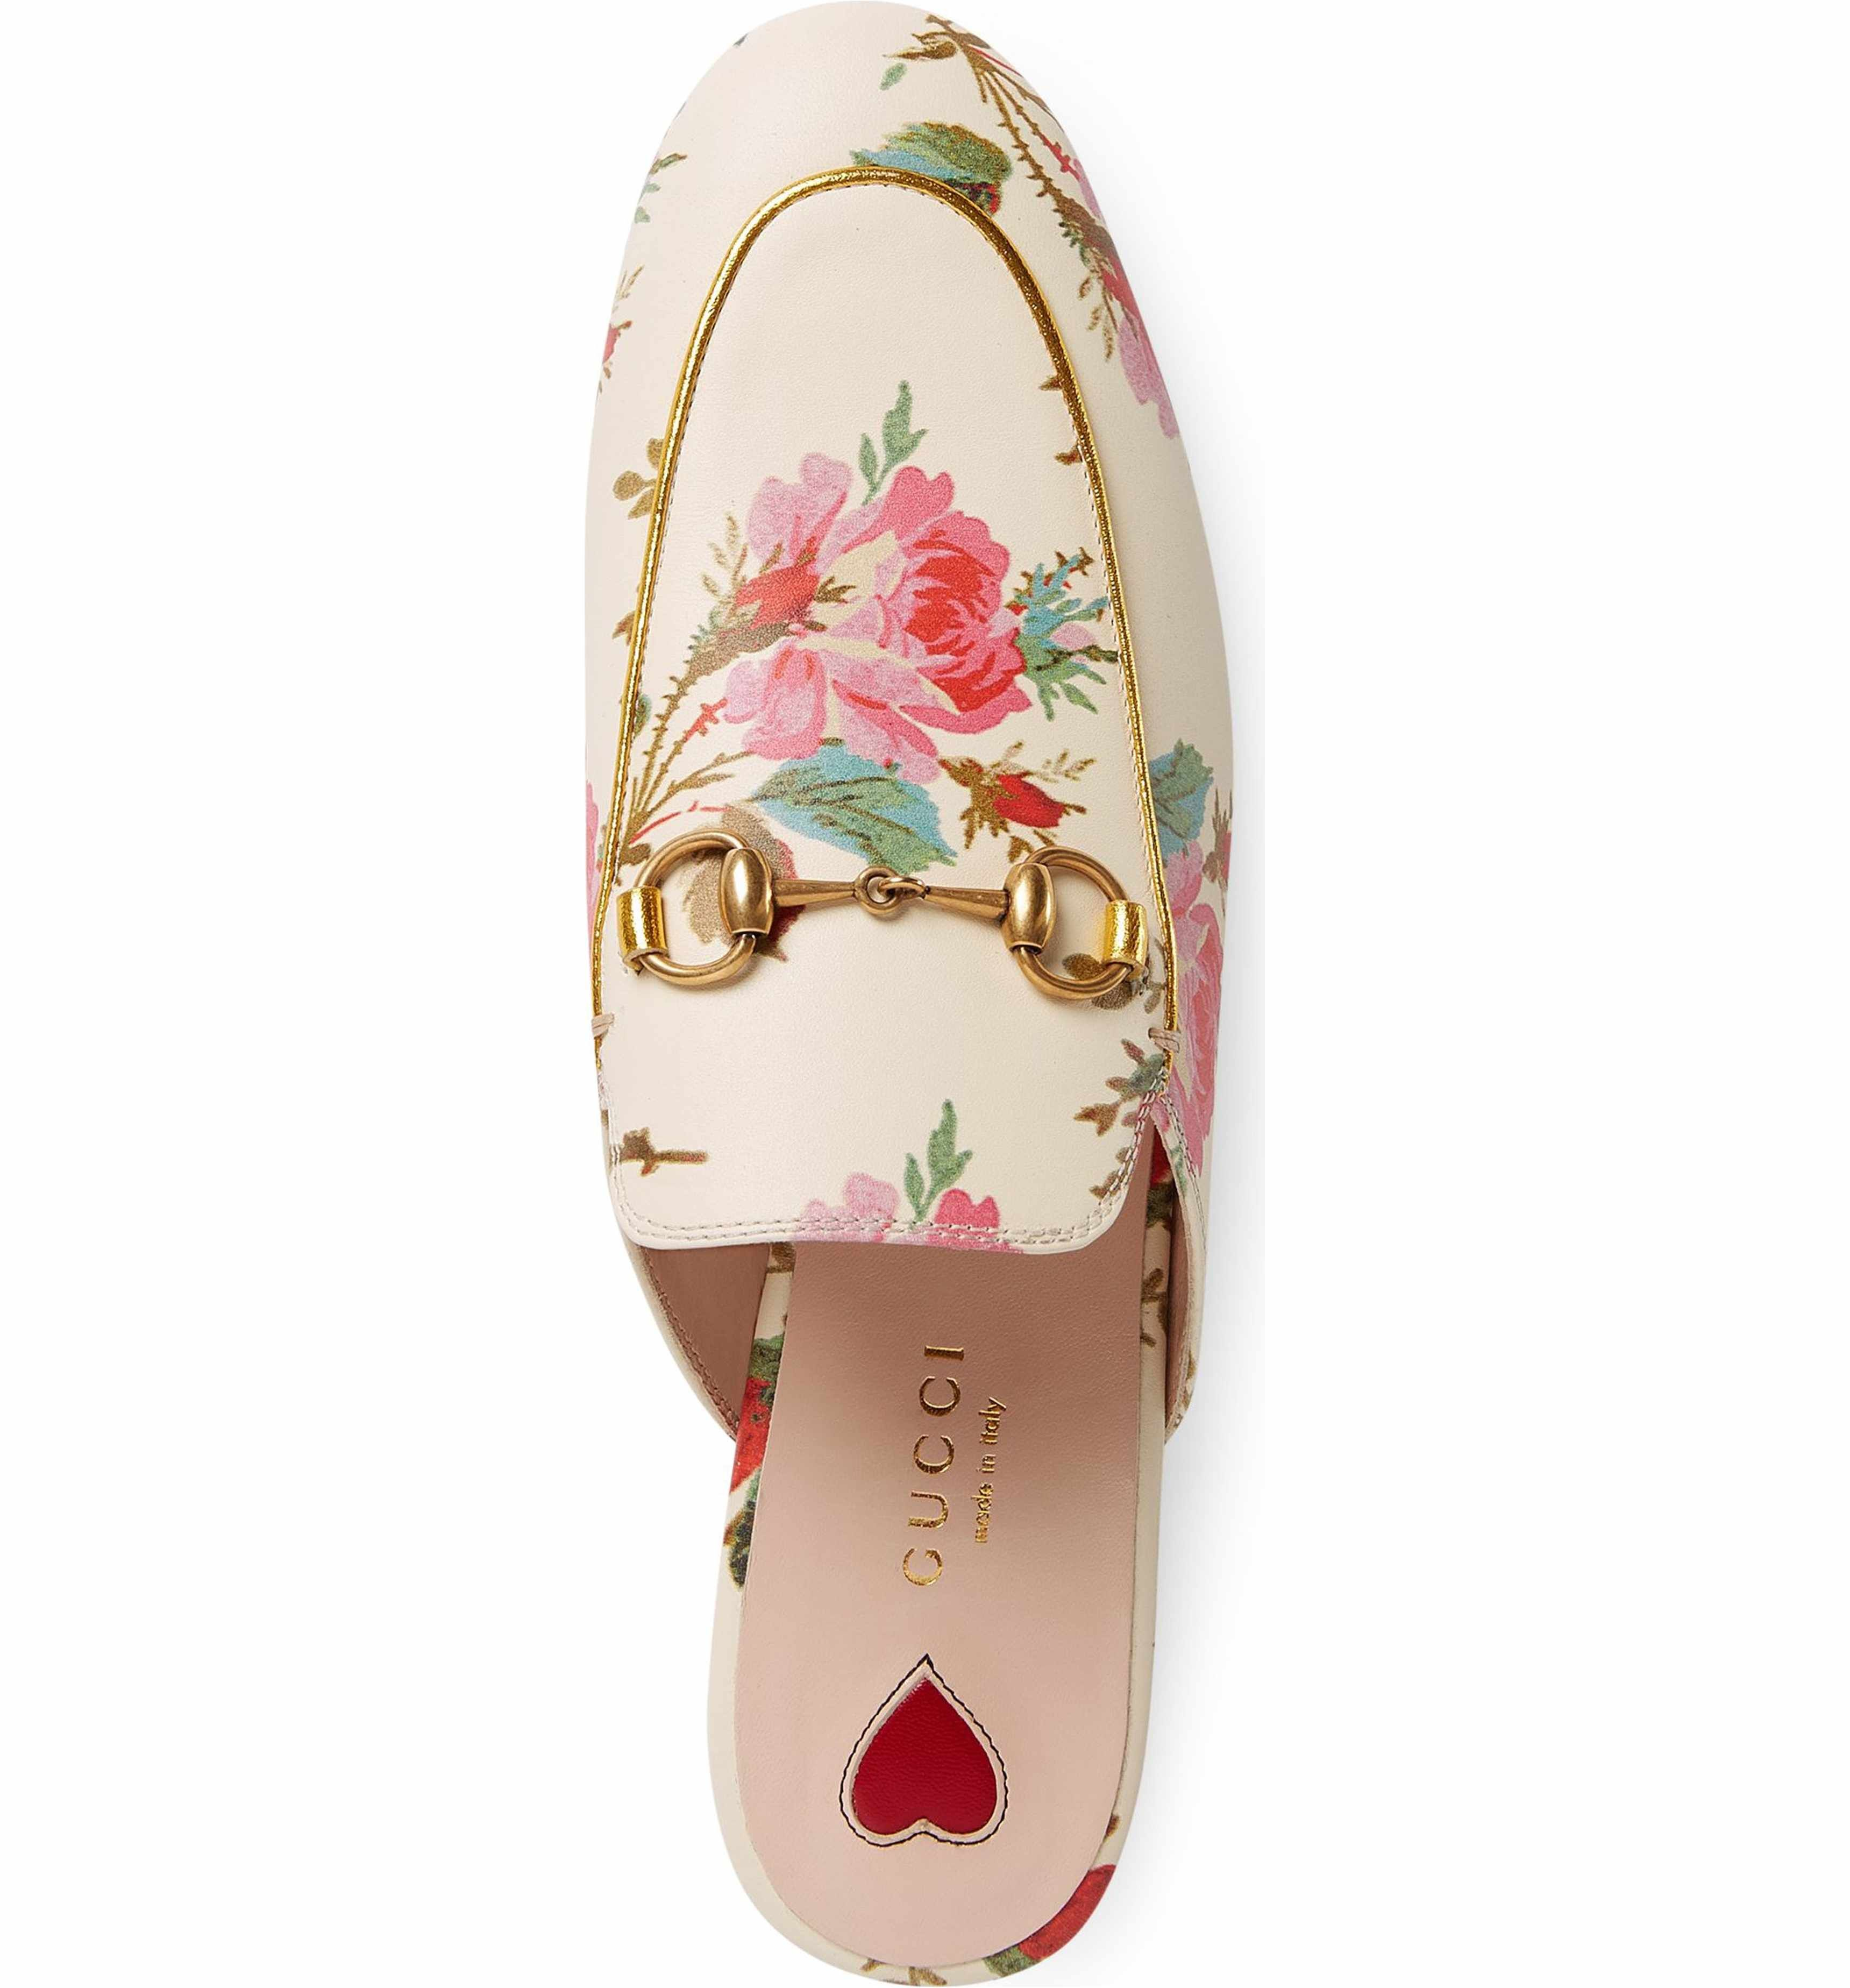 Gucci Women's Princetown Floral Loafer Mule